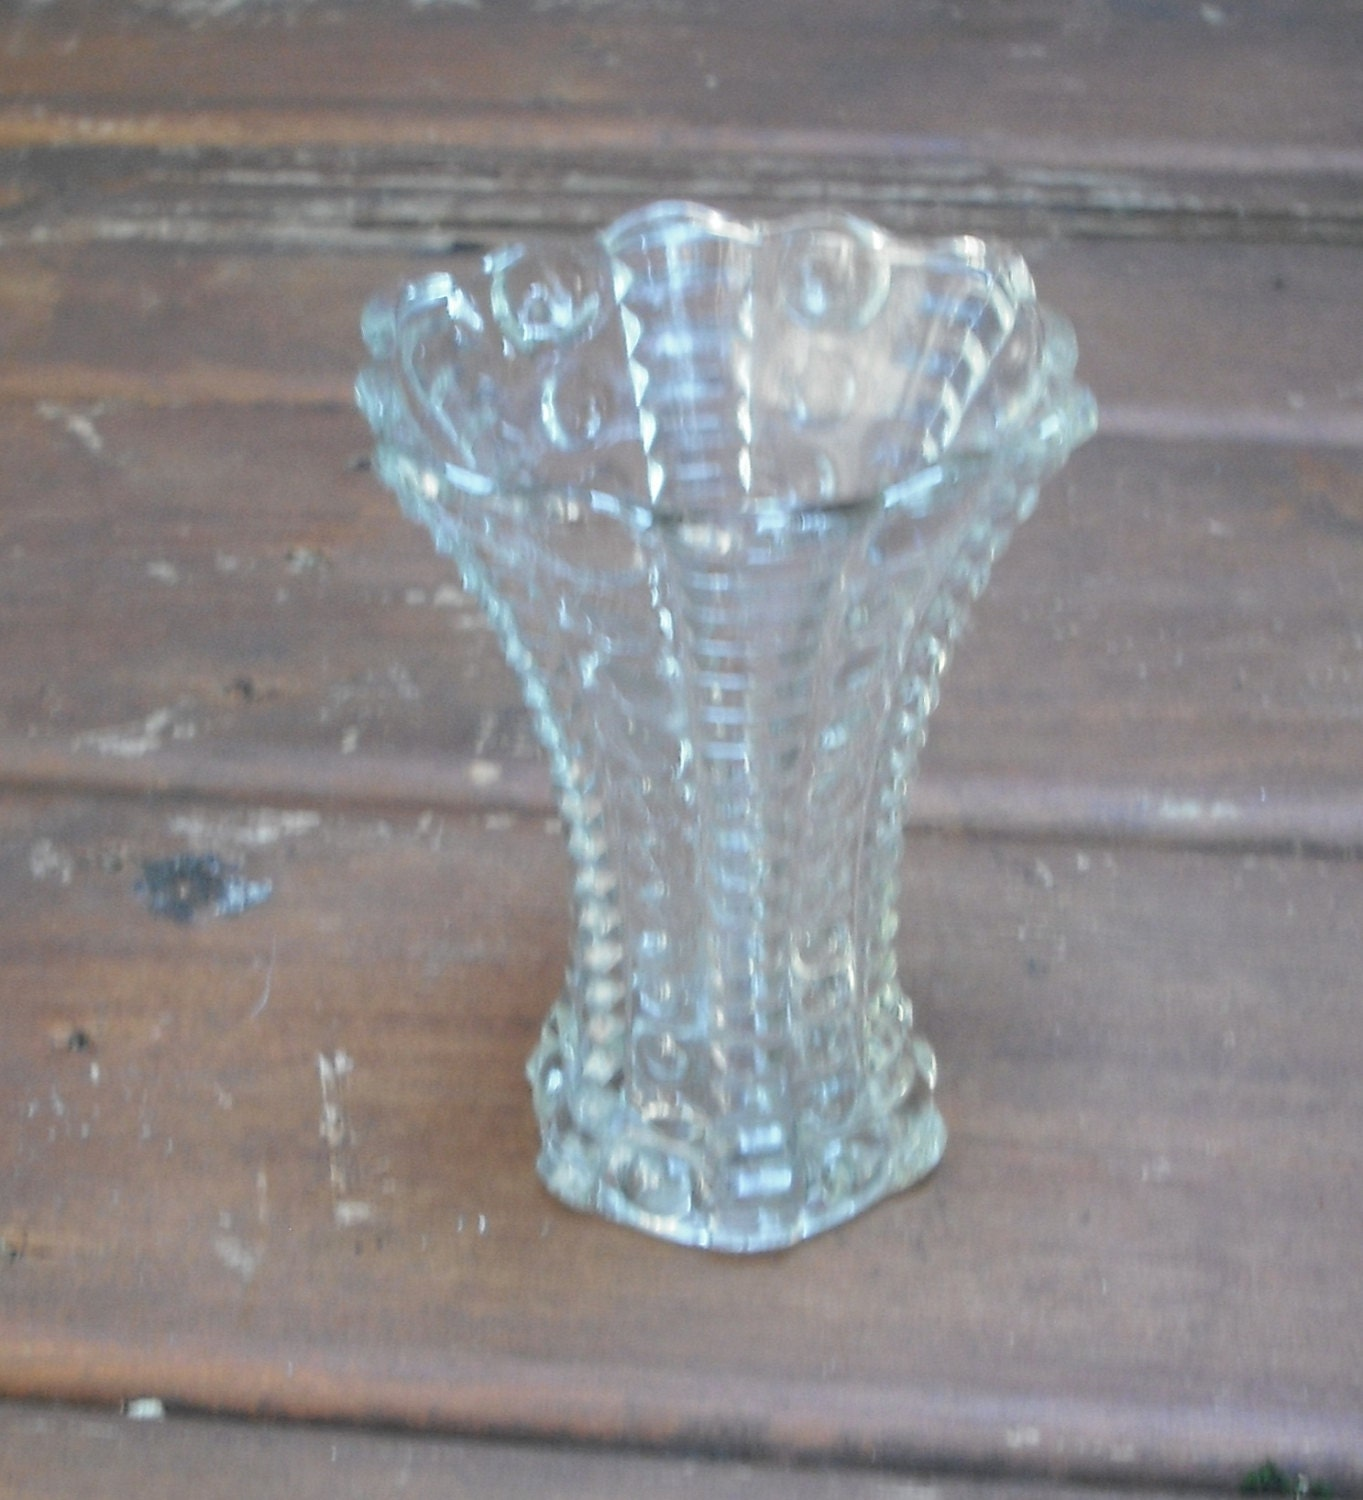 Items Similar To Clear Depression Glass Vase Bubbles And Ladder Pattern 5 Inches Tall On Etsy